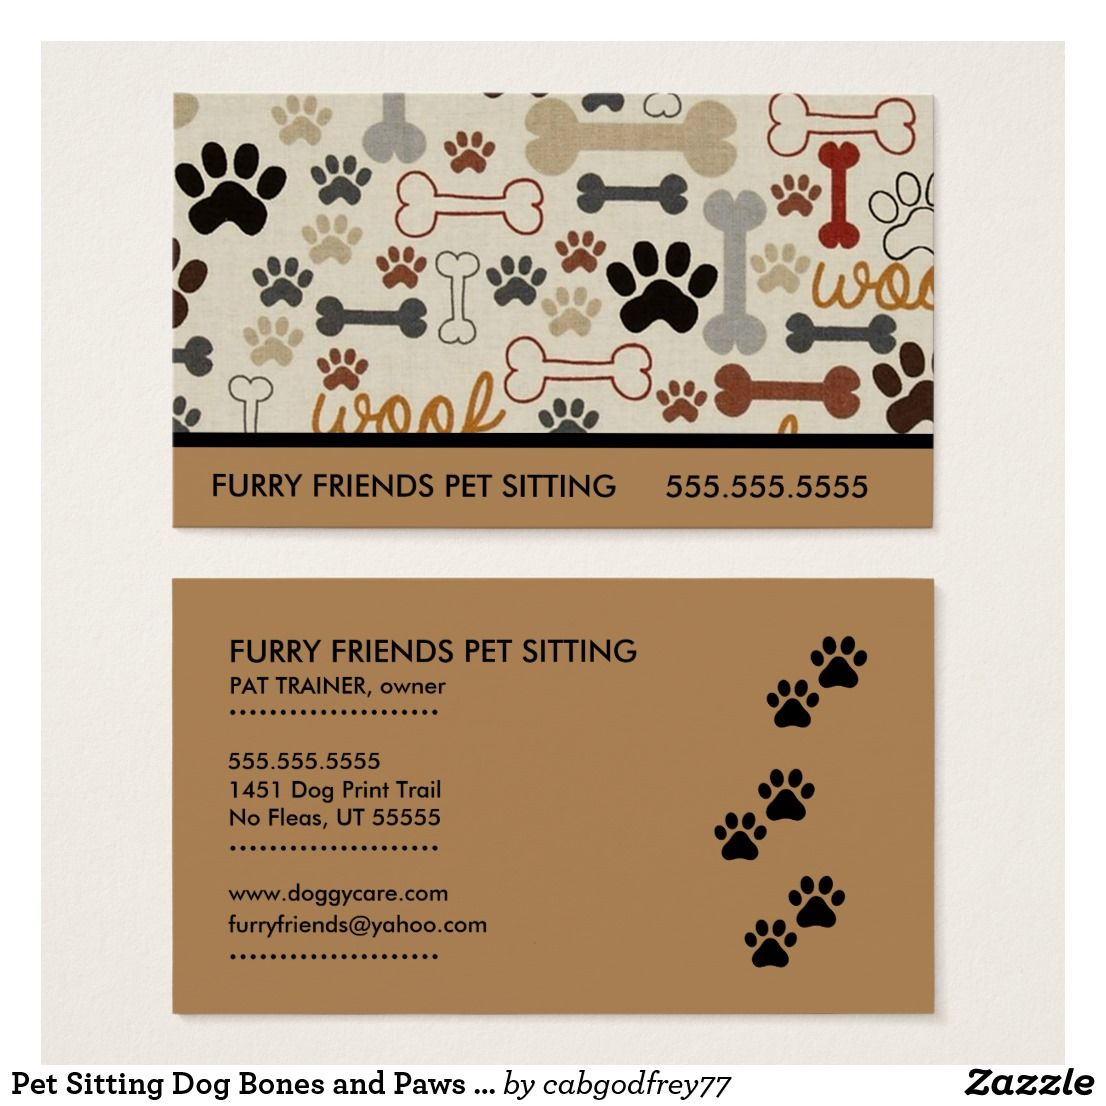 Pet Sitting Dog Bones And Paws Business Card Zazzle Com In 2020 Pet Sitting Business Cards Business Cards Pets Pet Sitting Business